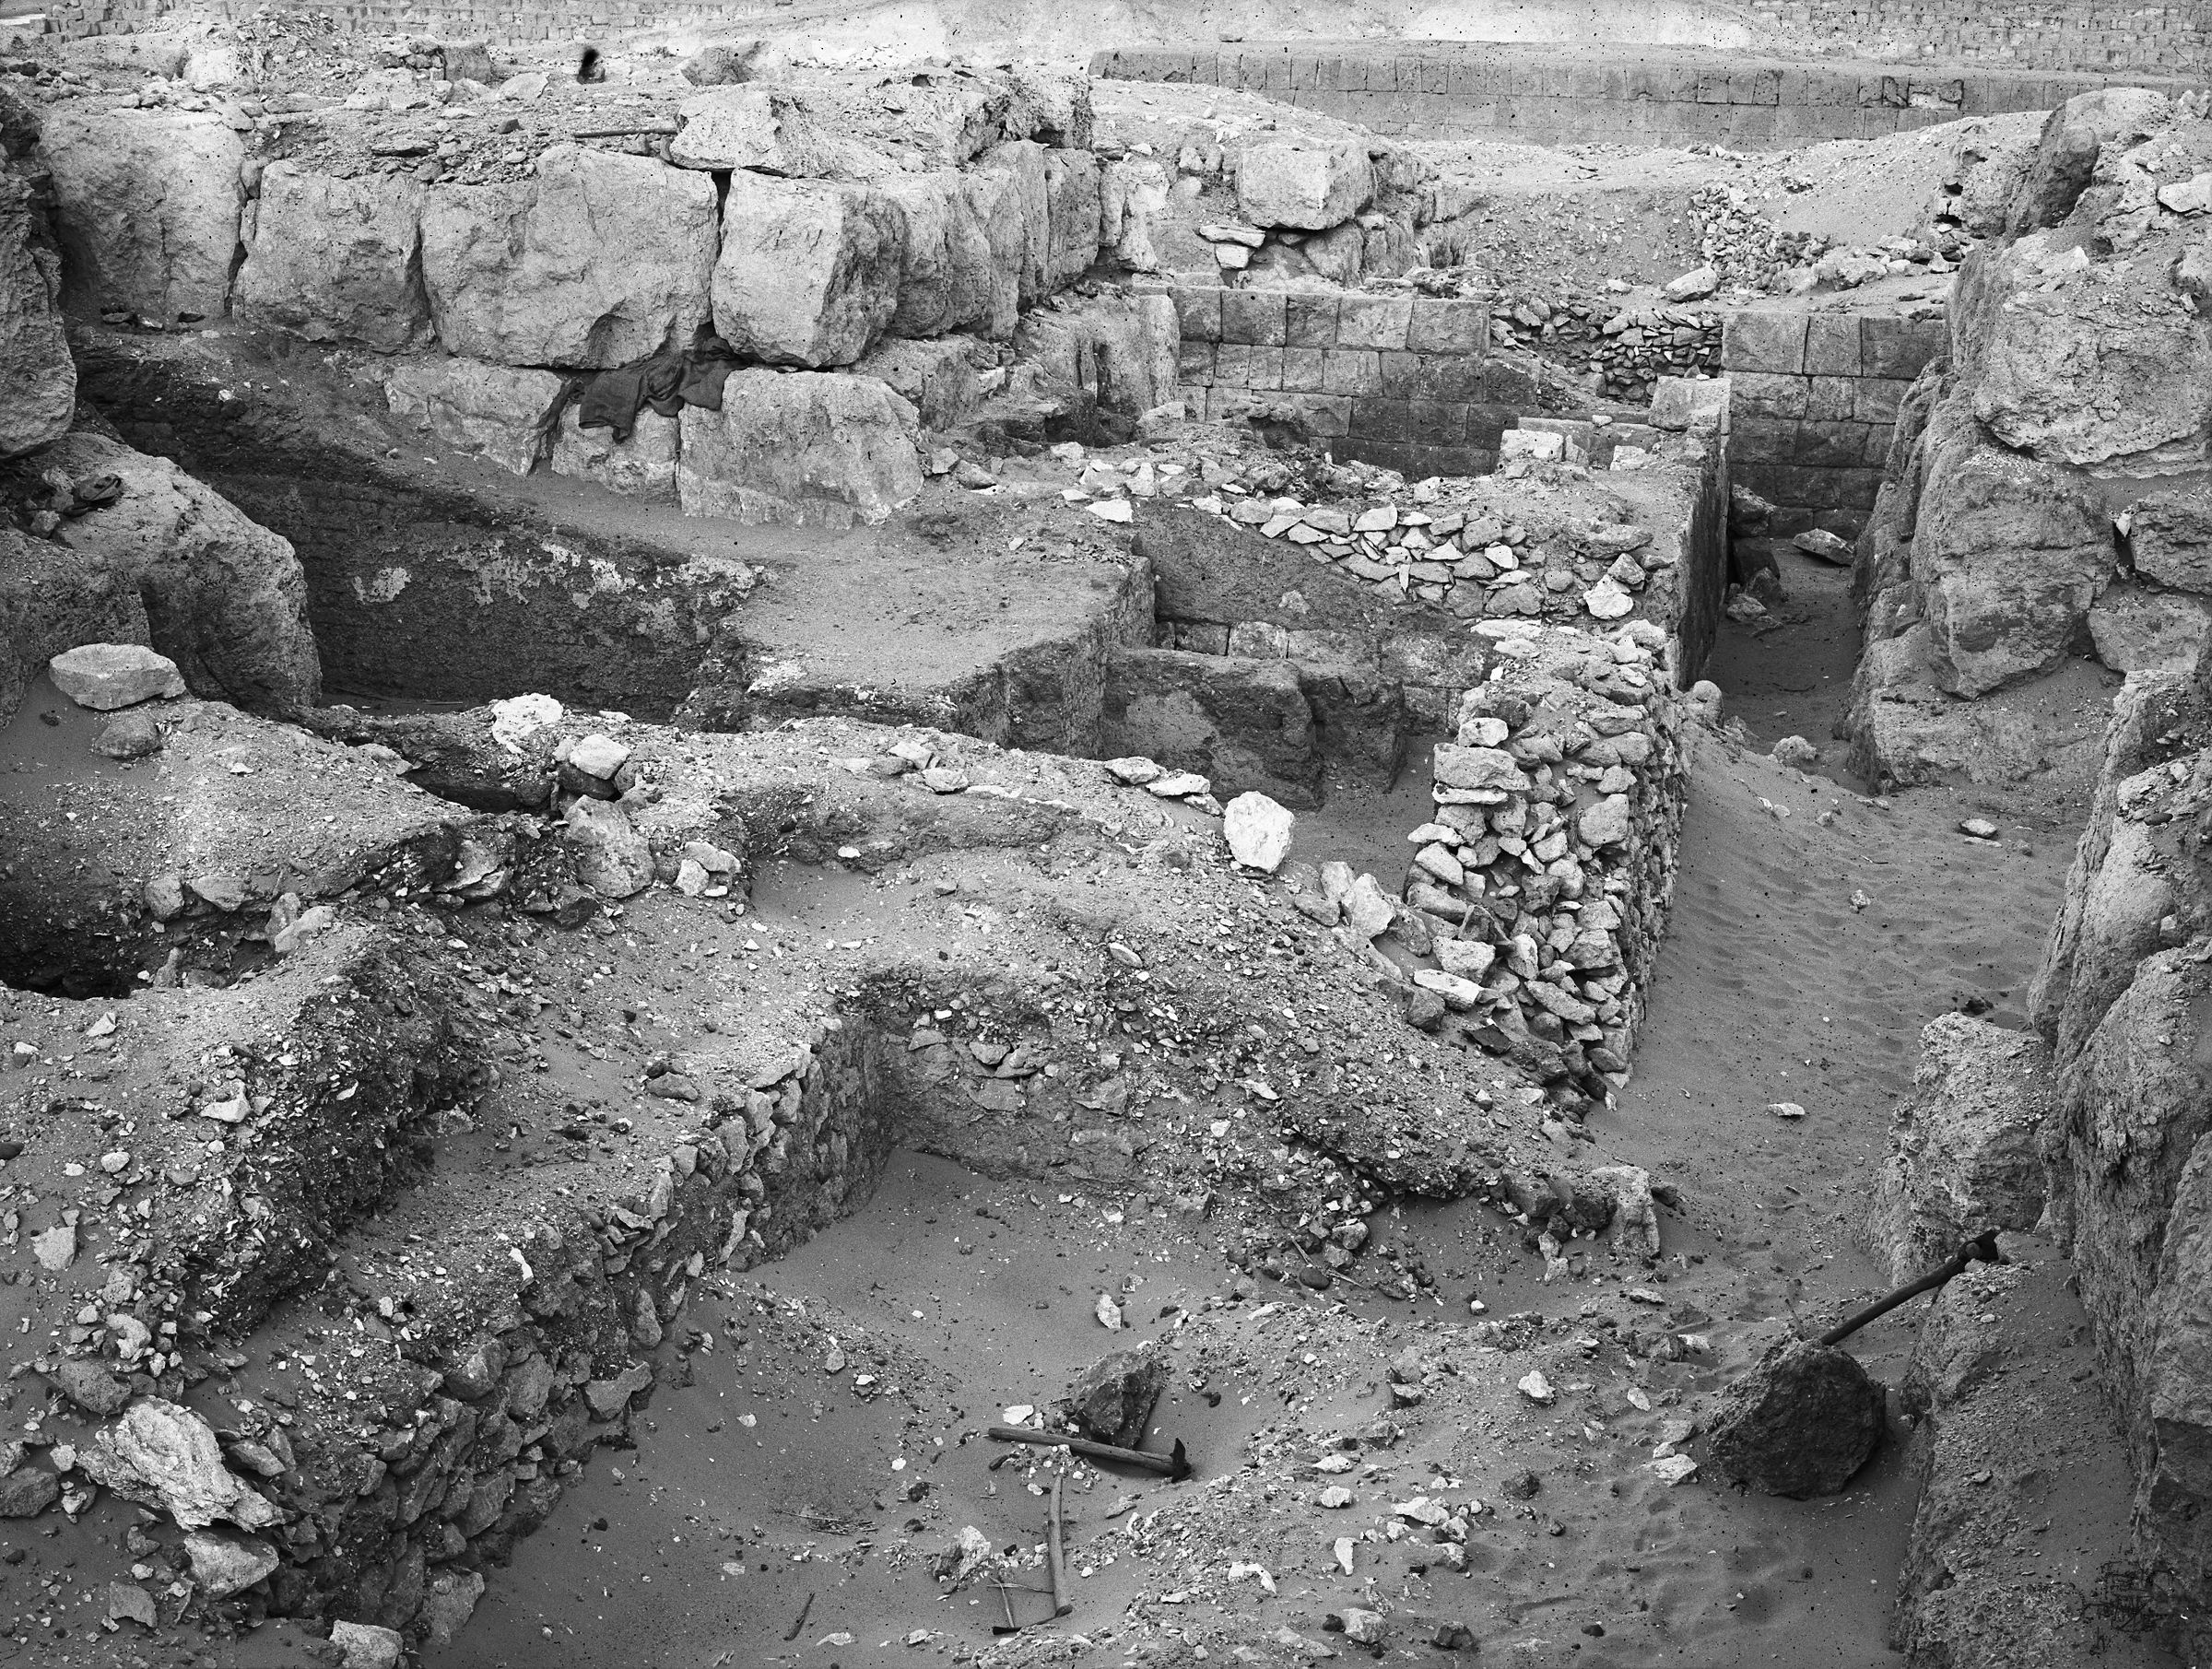 Western Cemetery: Site: Giza; View: G 4720, G 4730, G 4721, G 4733